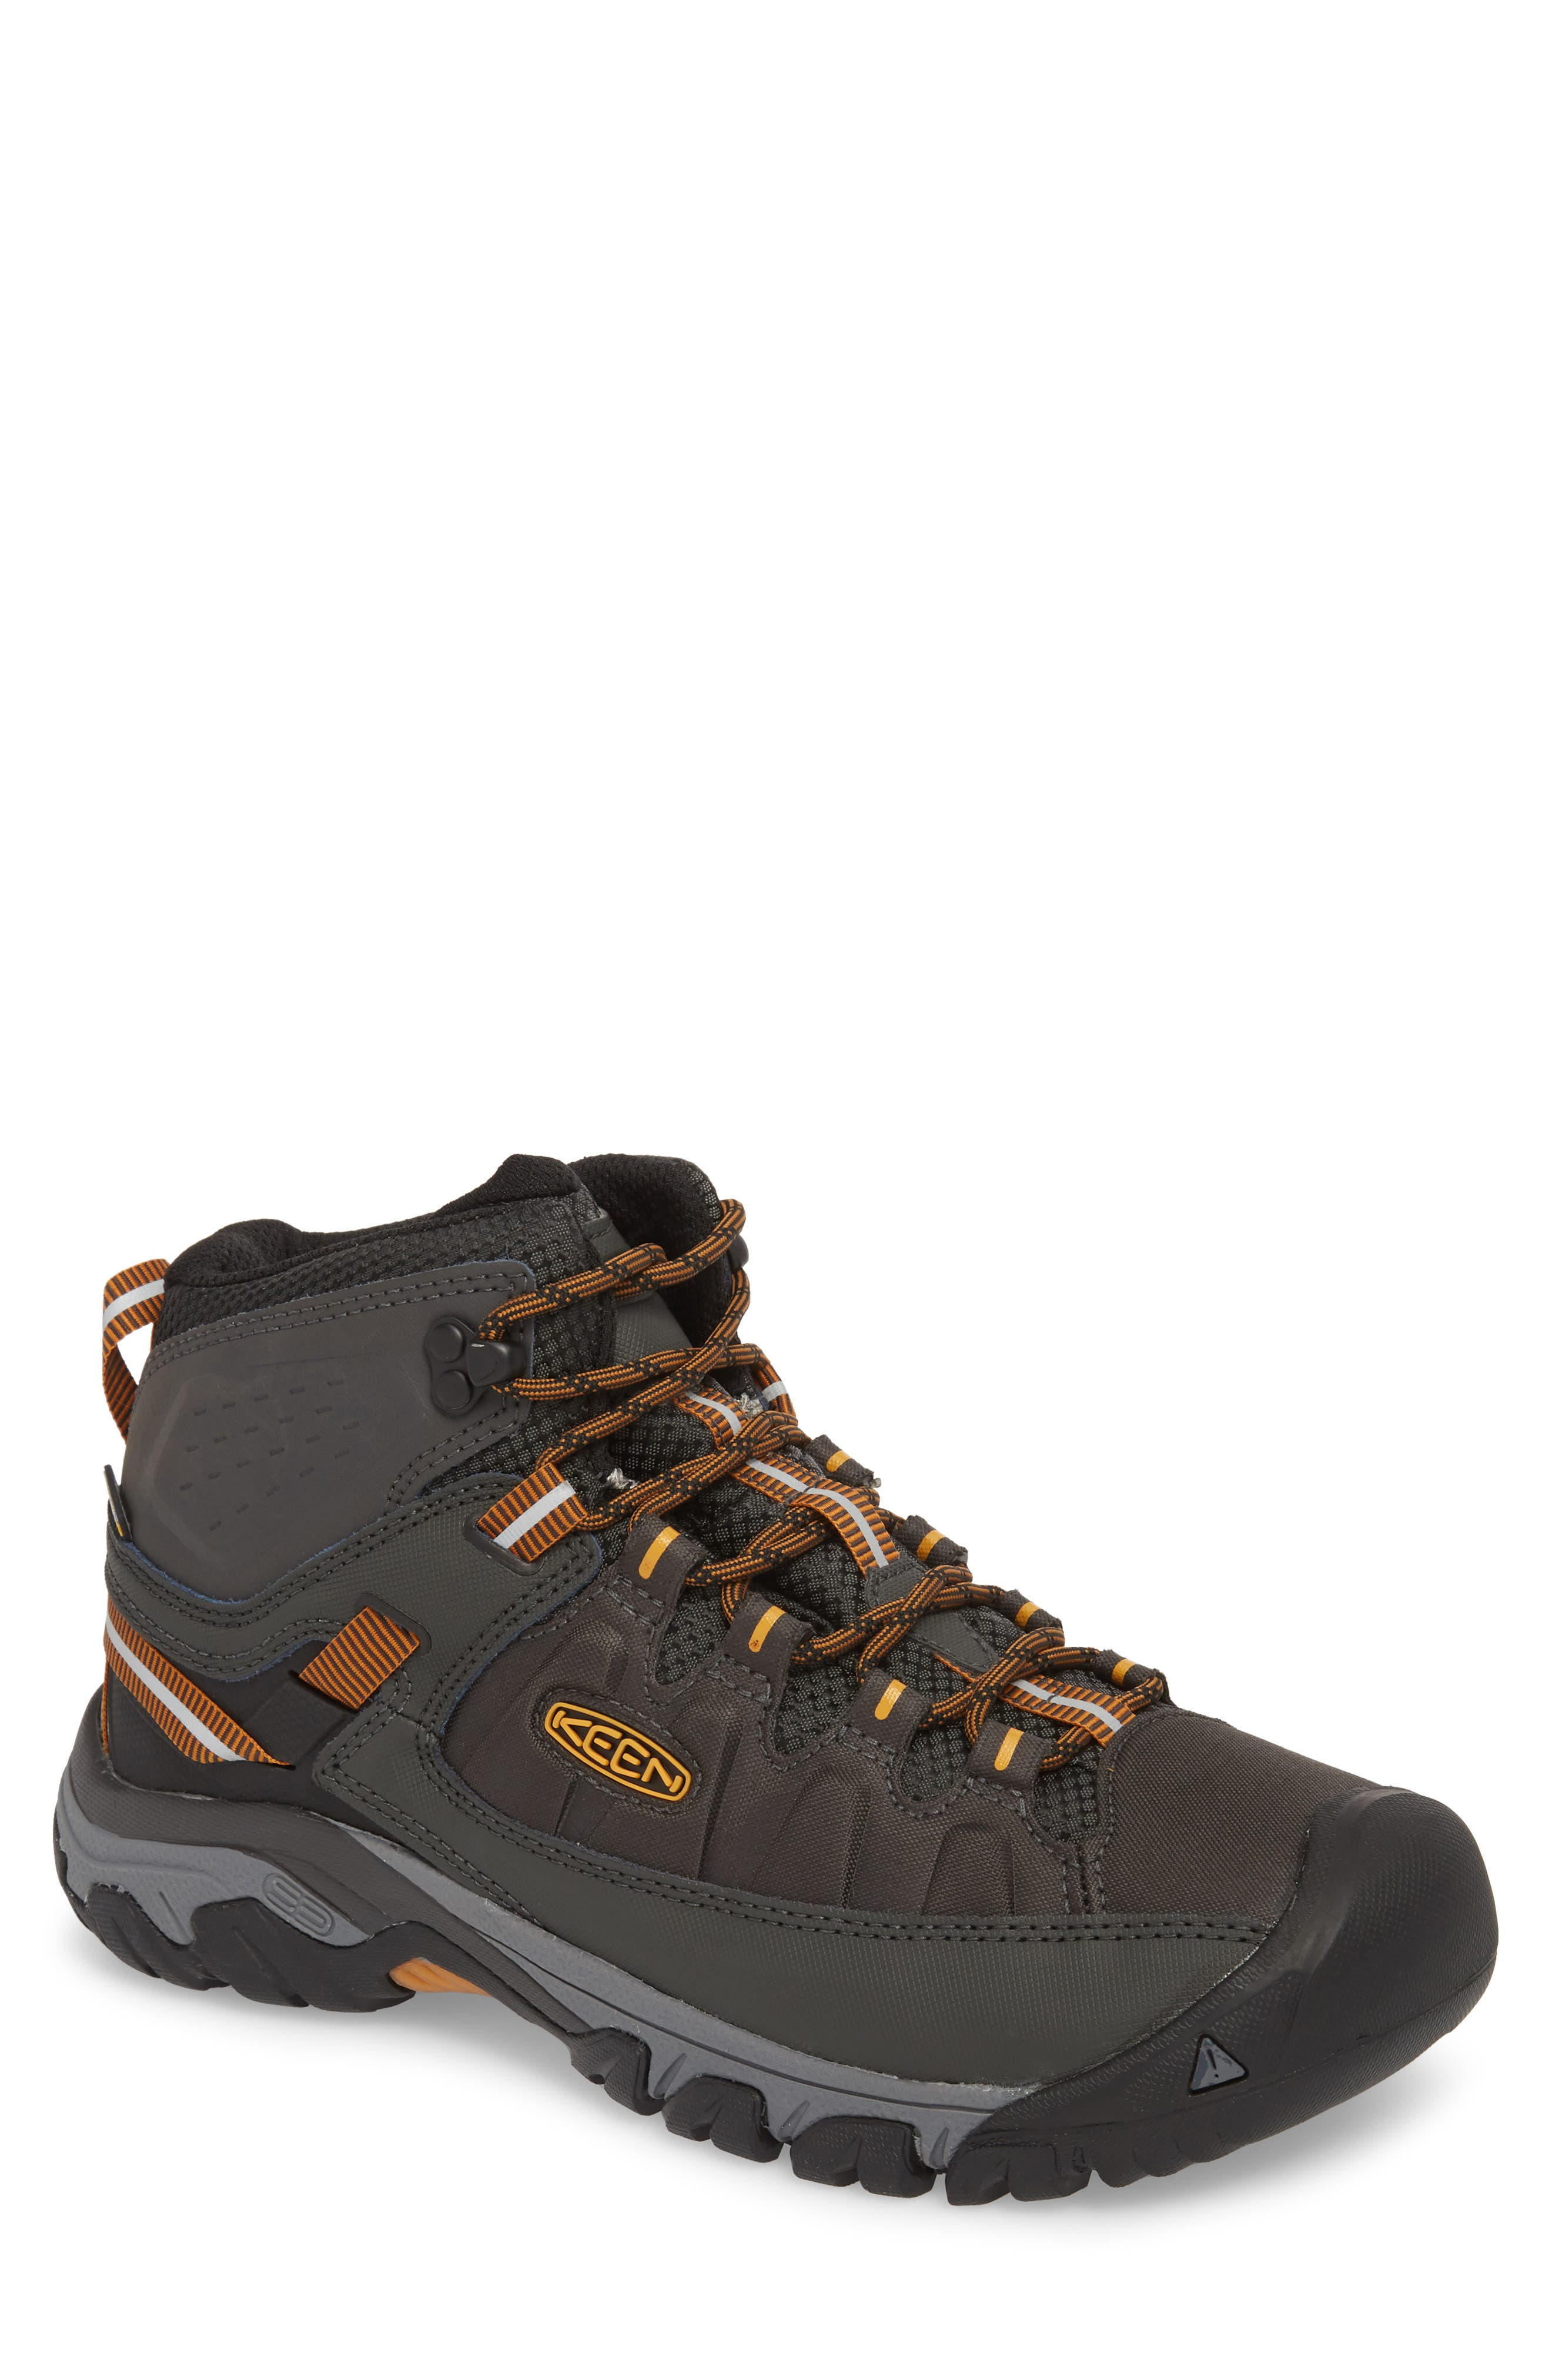 This sturdy, waterproof hiking boot crafted from polyurethane-coated leather and durable performance mesh stands up easily to all your off-road exploring. A metatomical footbed offers superior cushioning and arch support, while the high-traction rubber sole provides multi-directional grip and stability in any terrain. Style Name: Keen Targhee Exp Mid Waterproof Hiking Boot (Men). Style Number: 5624844. Available in stores.